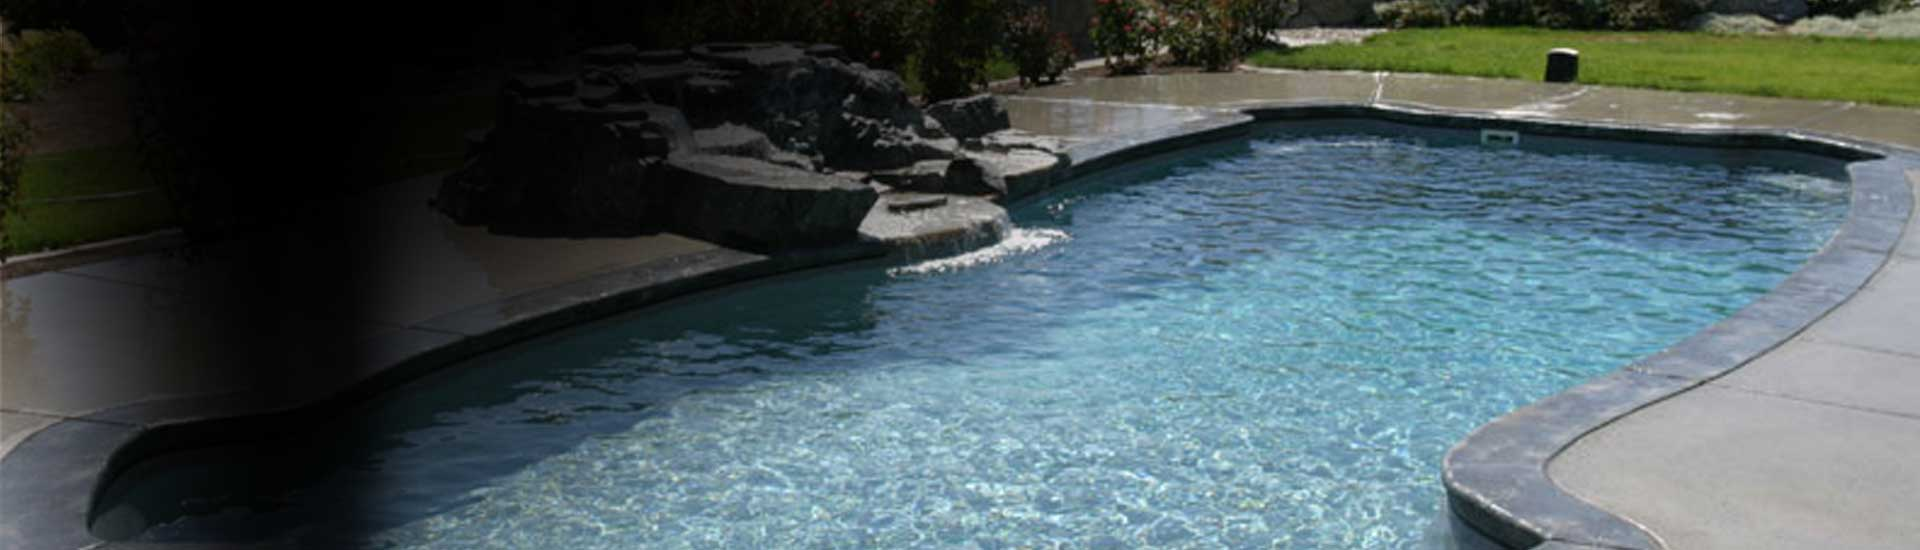 Affordable pools llc swimming pool construction for Affordable pools lafayette louisiana